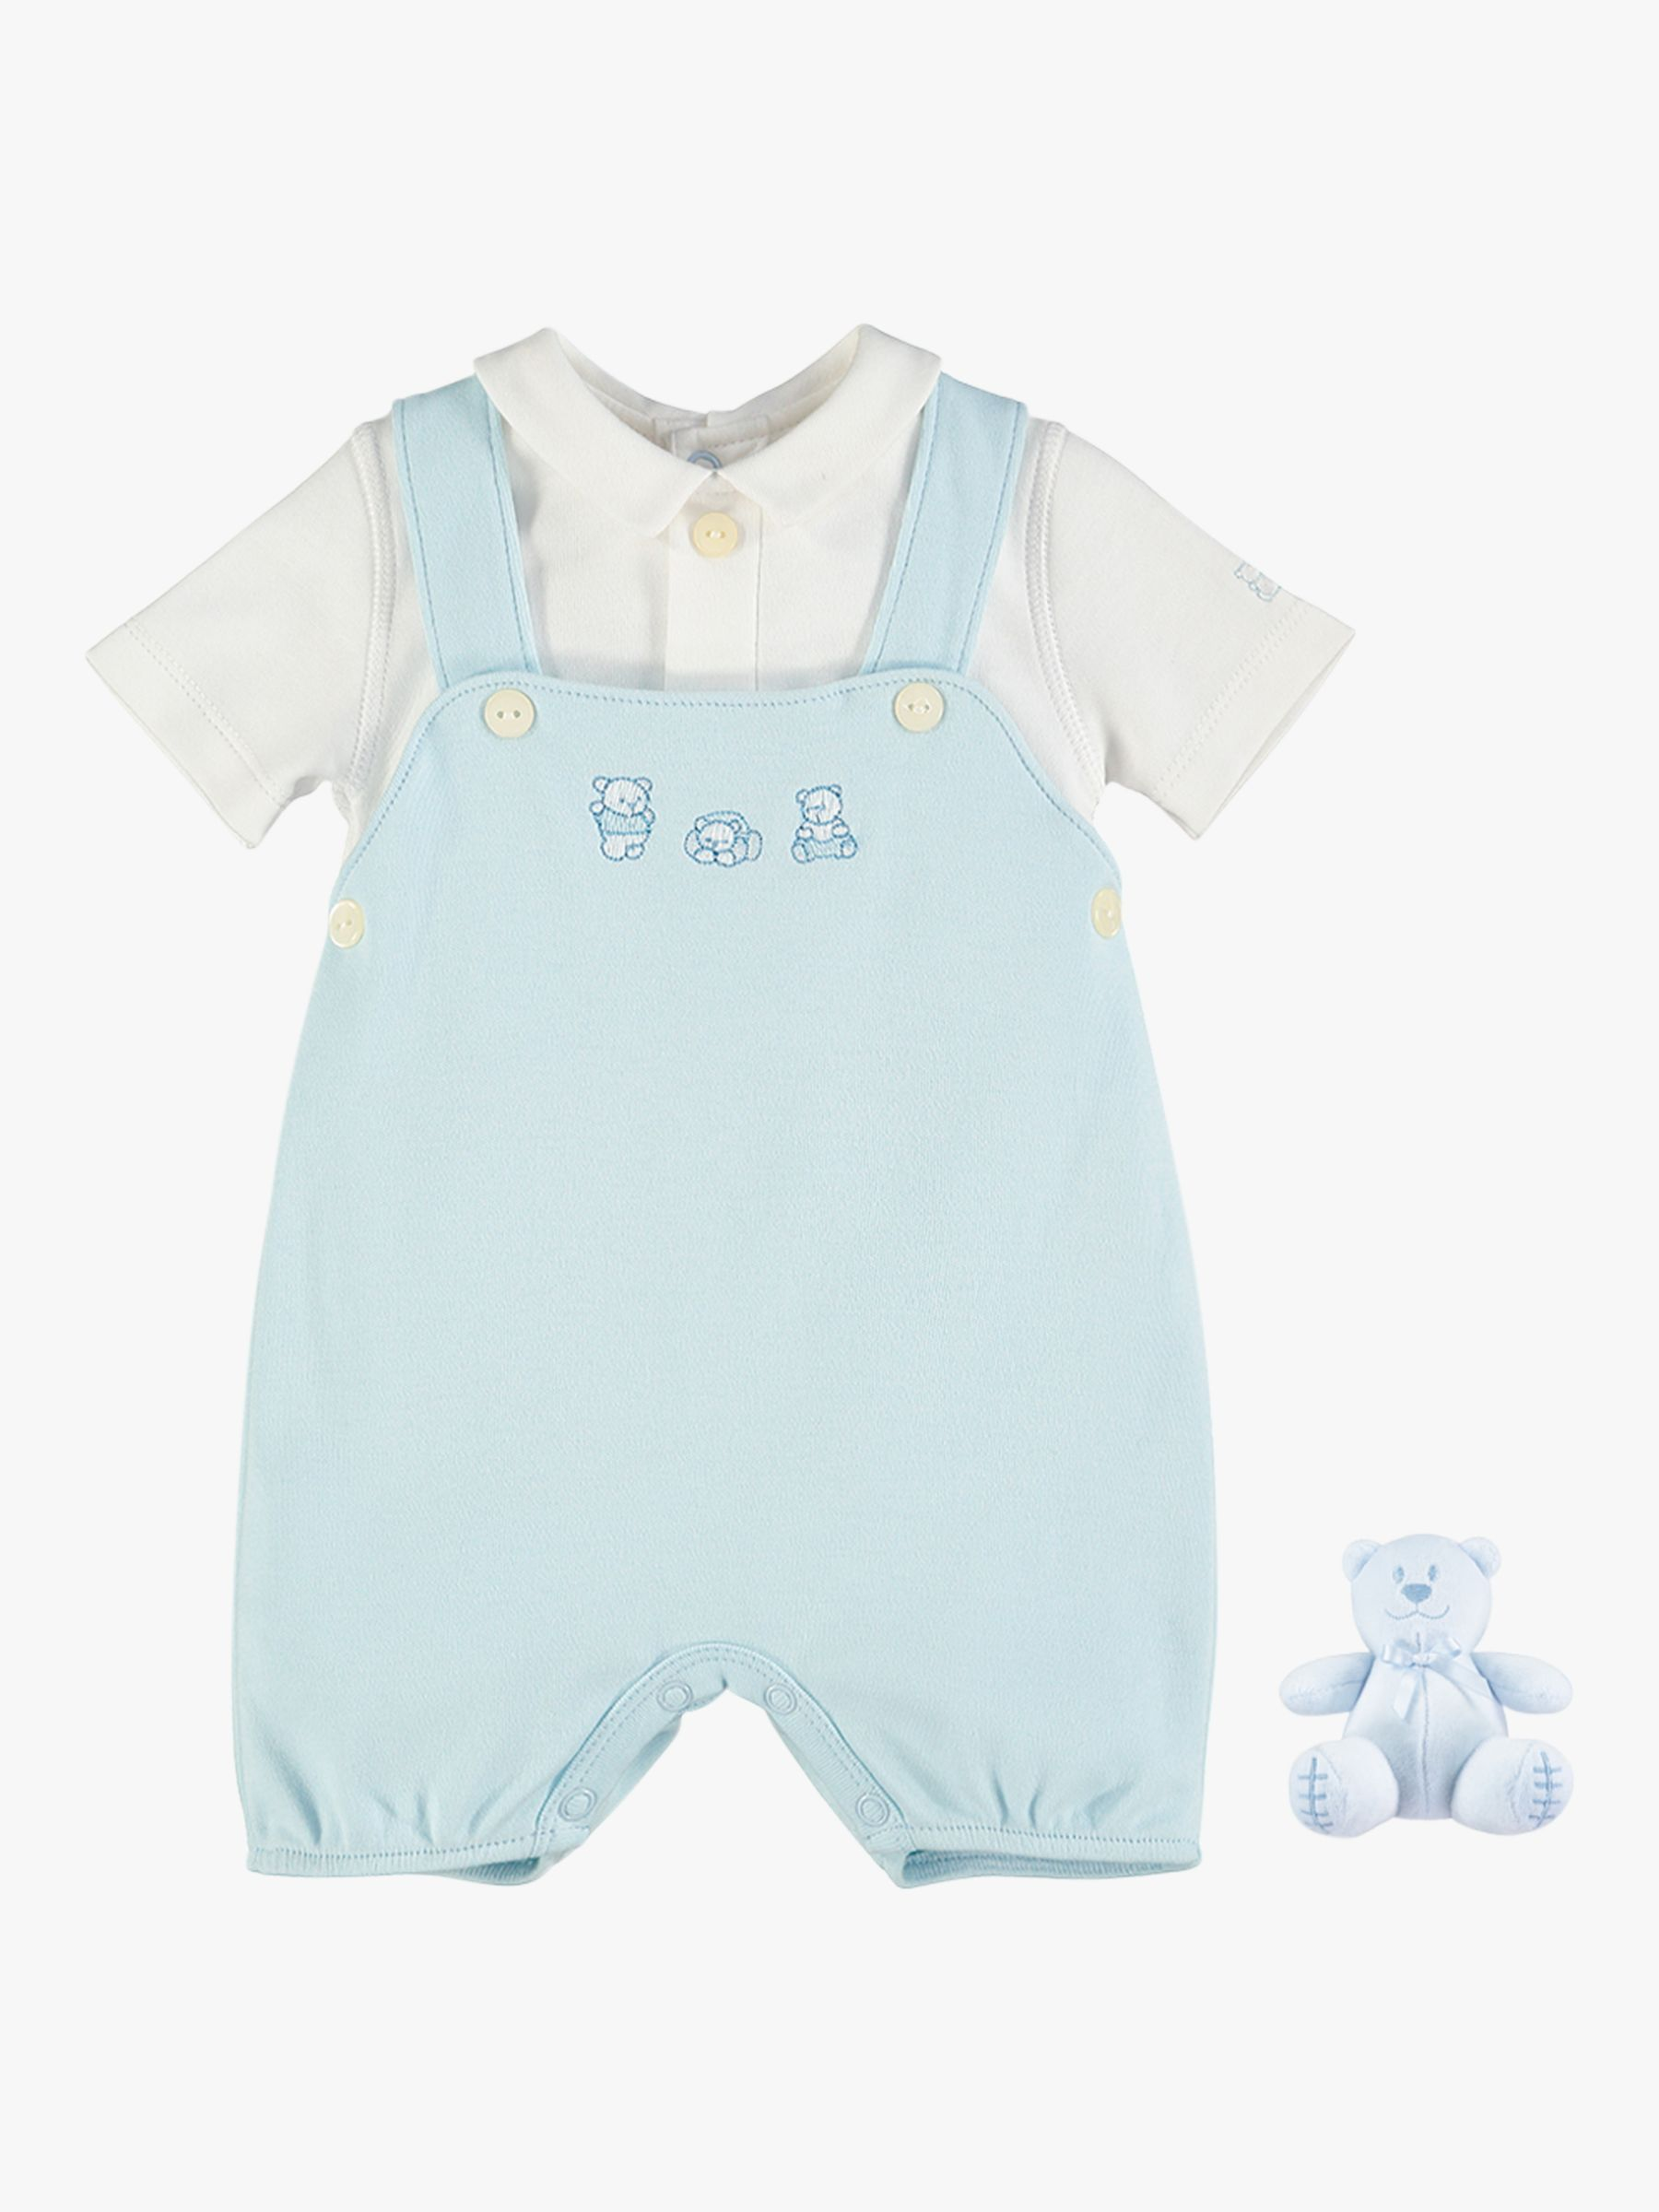 Emile et Rose Emile et Rose Stefano Dungaree and Teddy Bear Set, Pale Blue